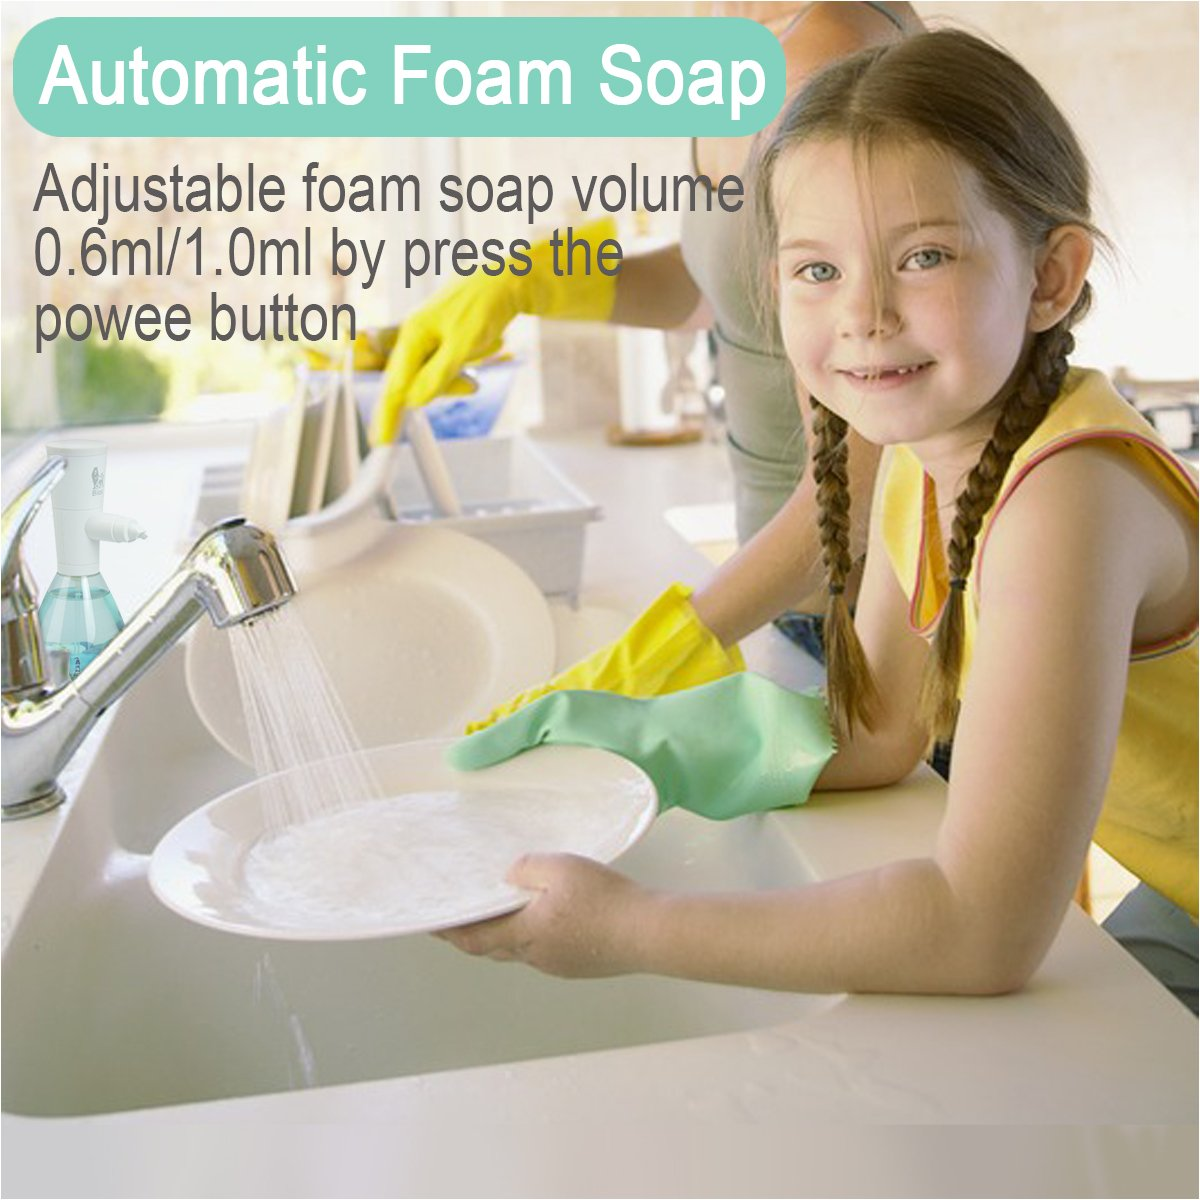 Makife Foaming Soap Dispenser Touchless Automatic Soap Dispenser 500Ml Adjustable Foam for Kitchen Bathroom